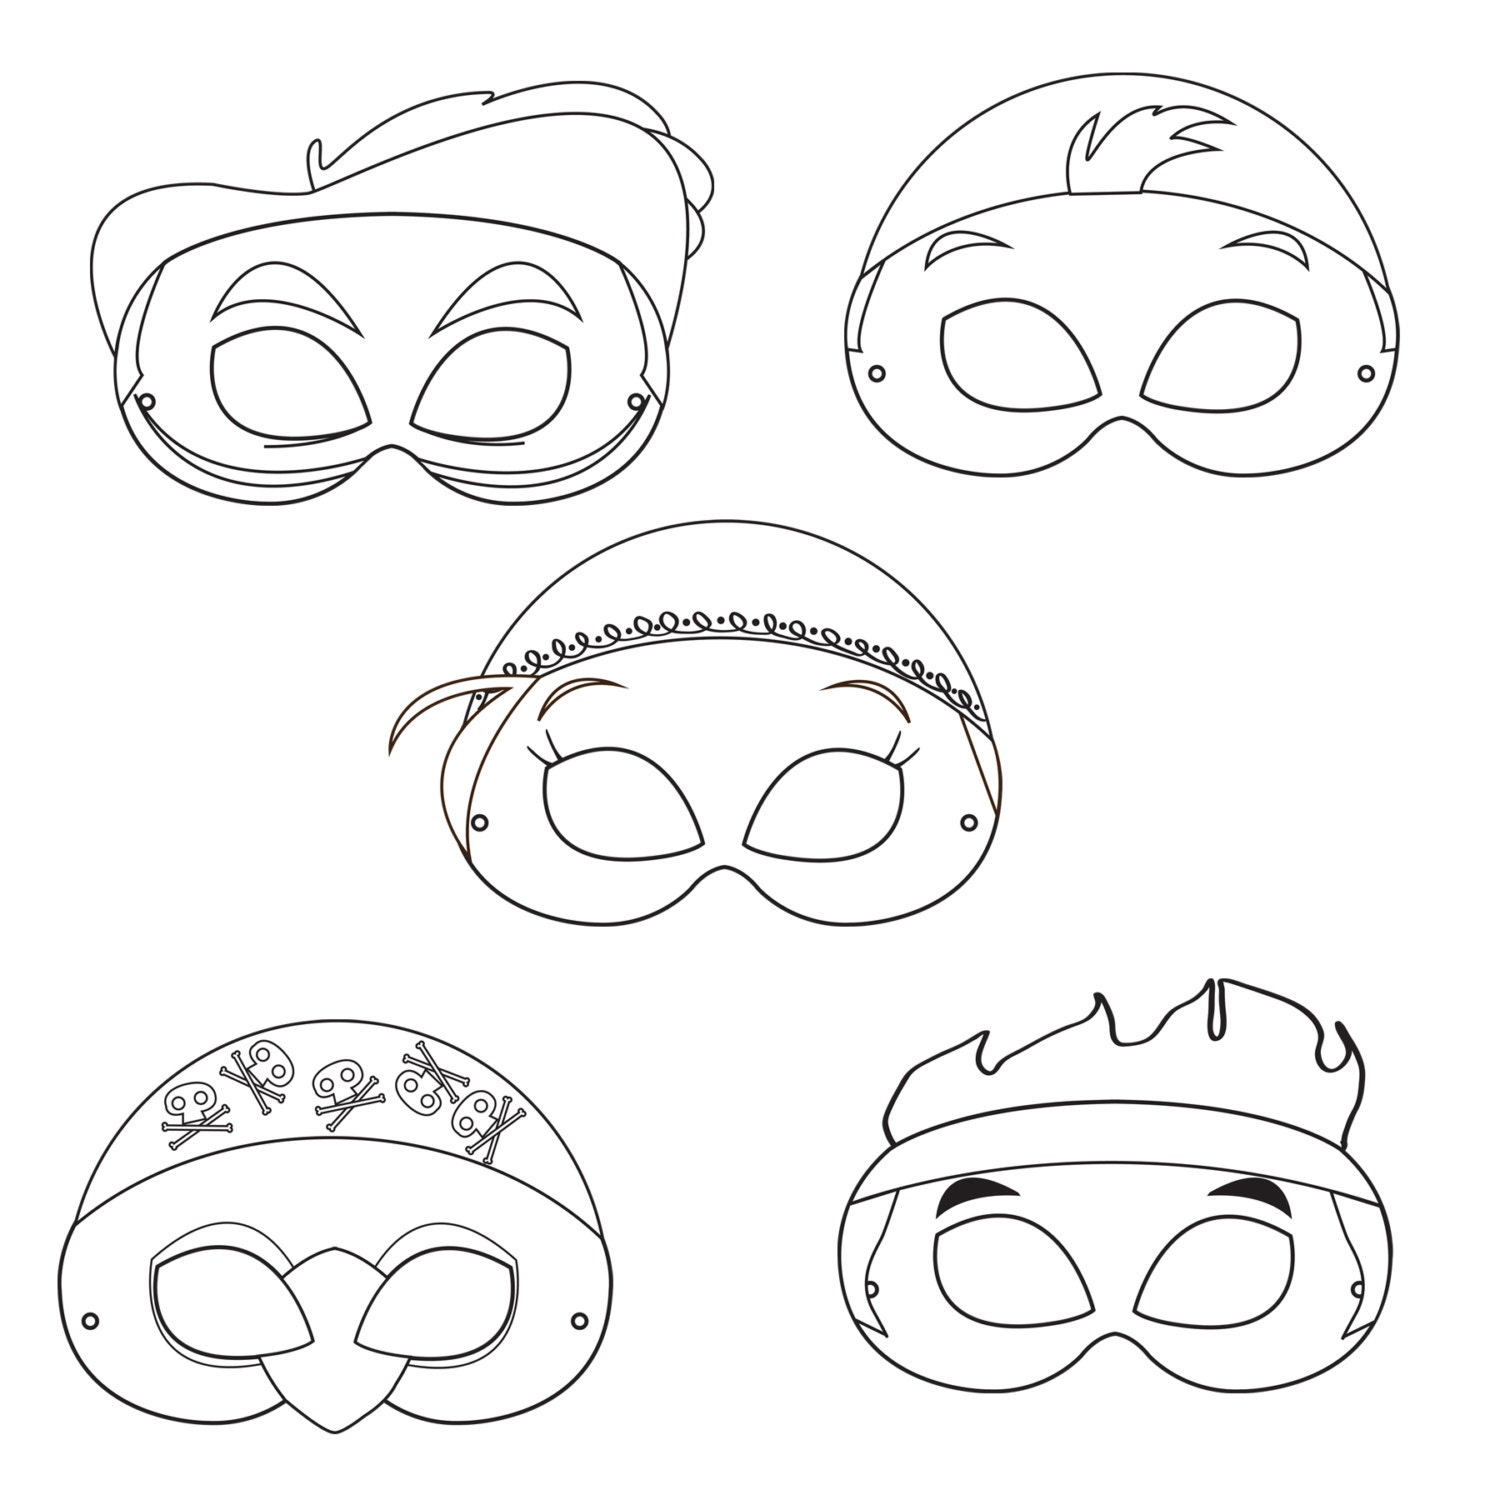 Uncategorized Pirate Masks To Print neverland pirates printable coloring masks pirate